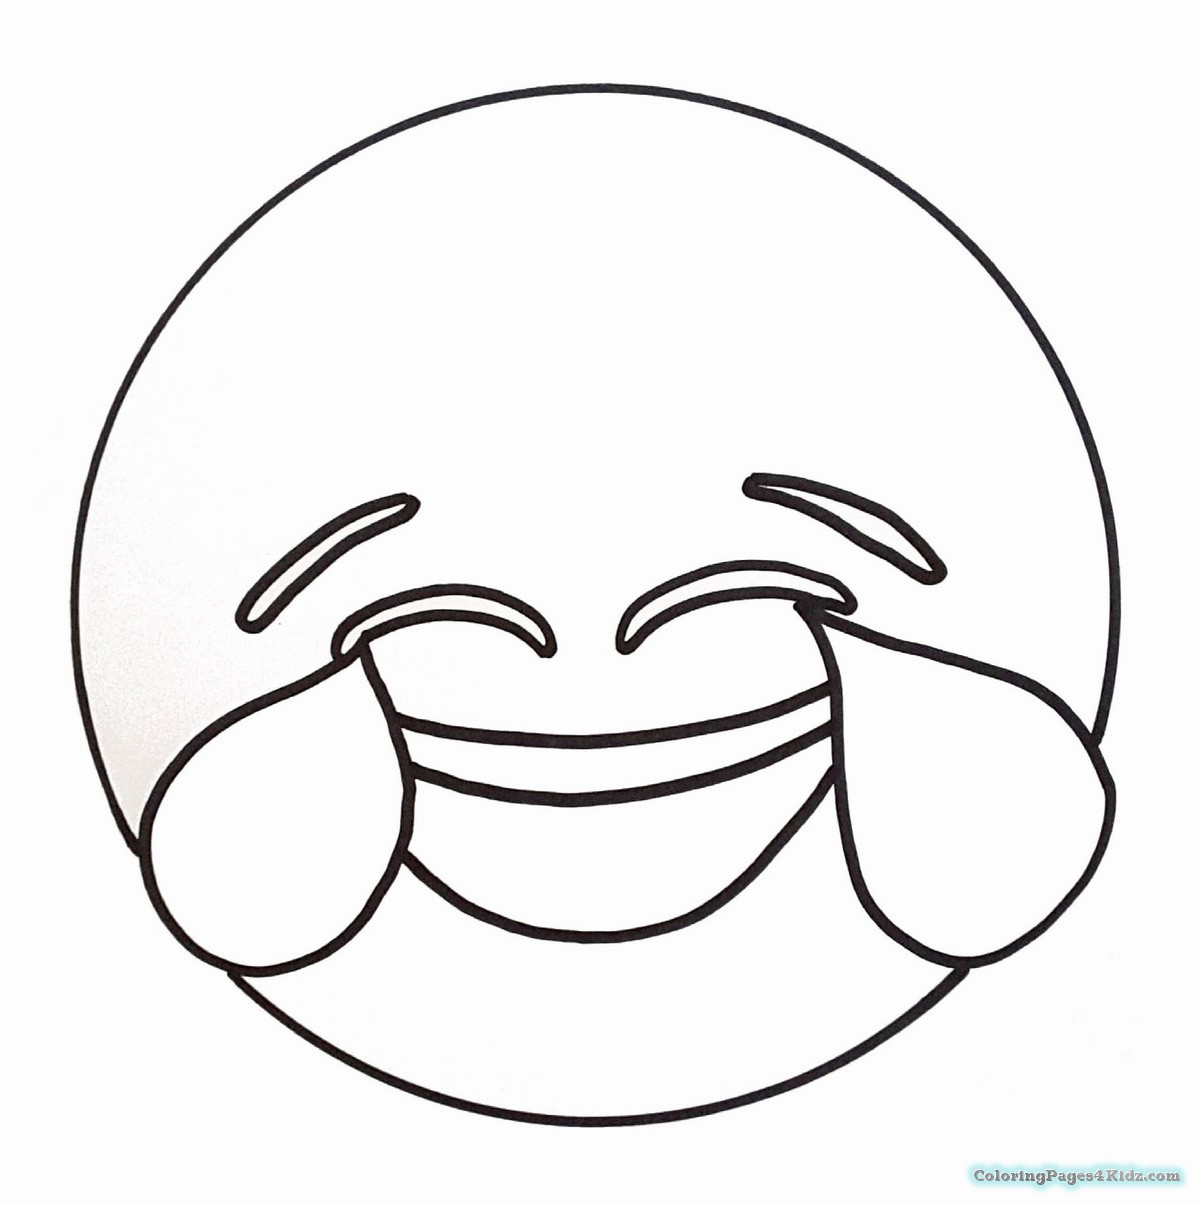 1200x1205 Emoji Coloring Pages All Coloring Pages For Kids